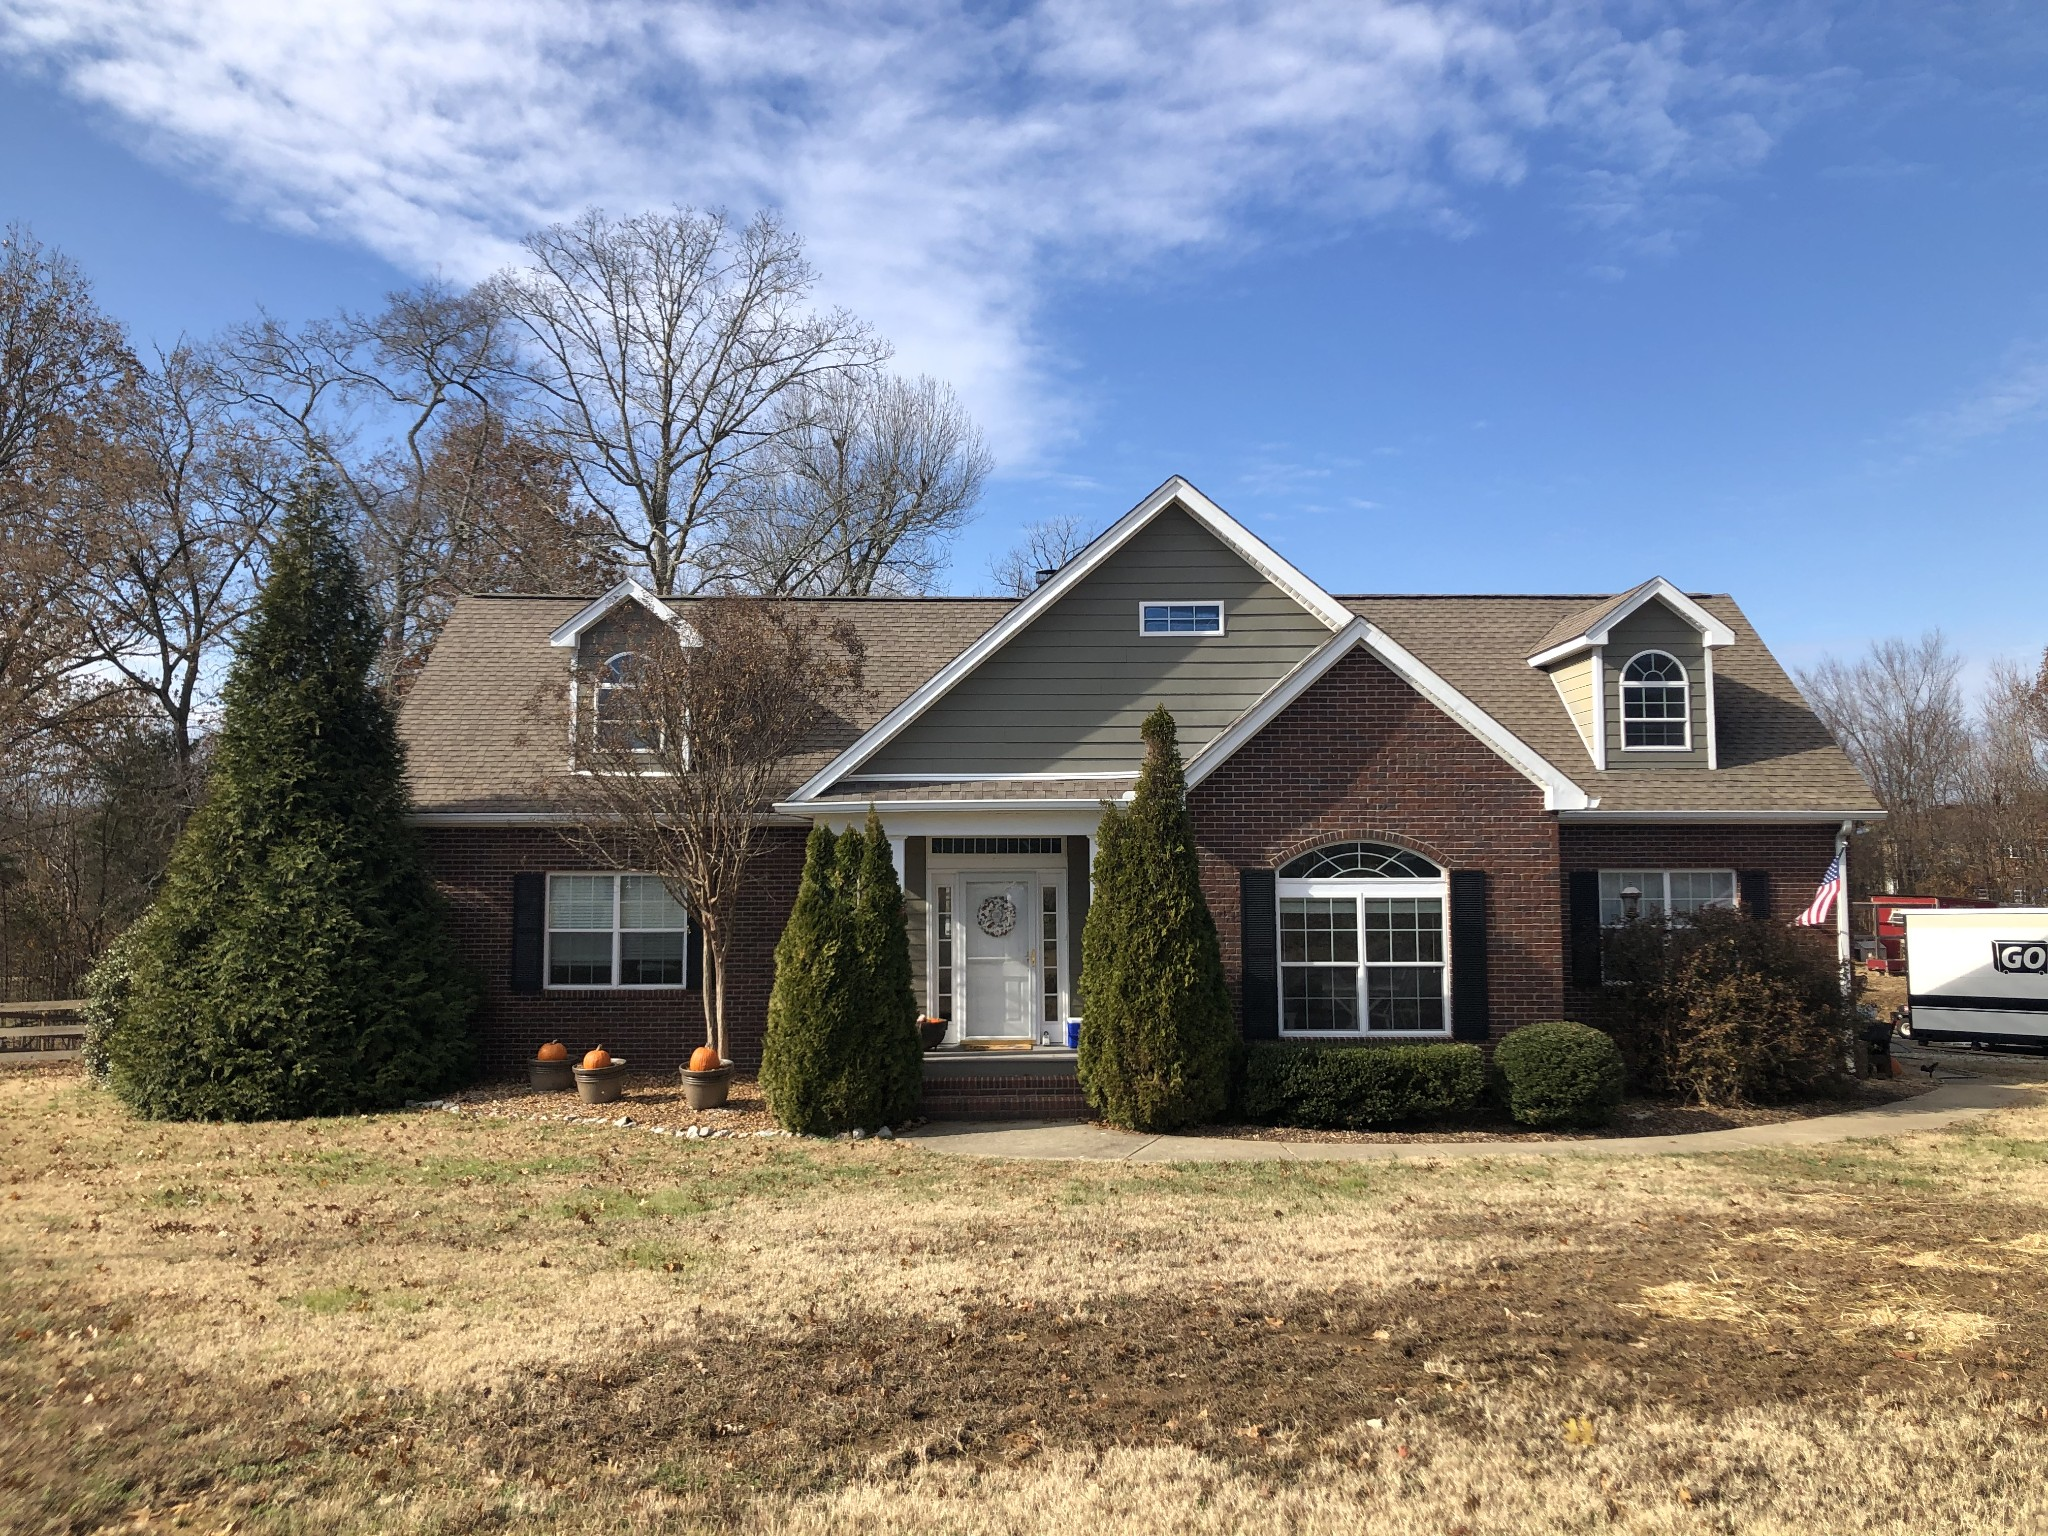 709 Spring Haven Dr, Spring Hill, TN 37174 - Spring Hill, TN real estate listing